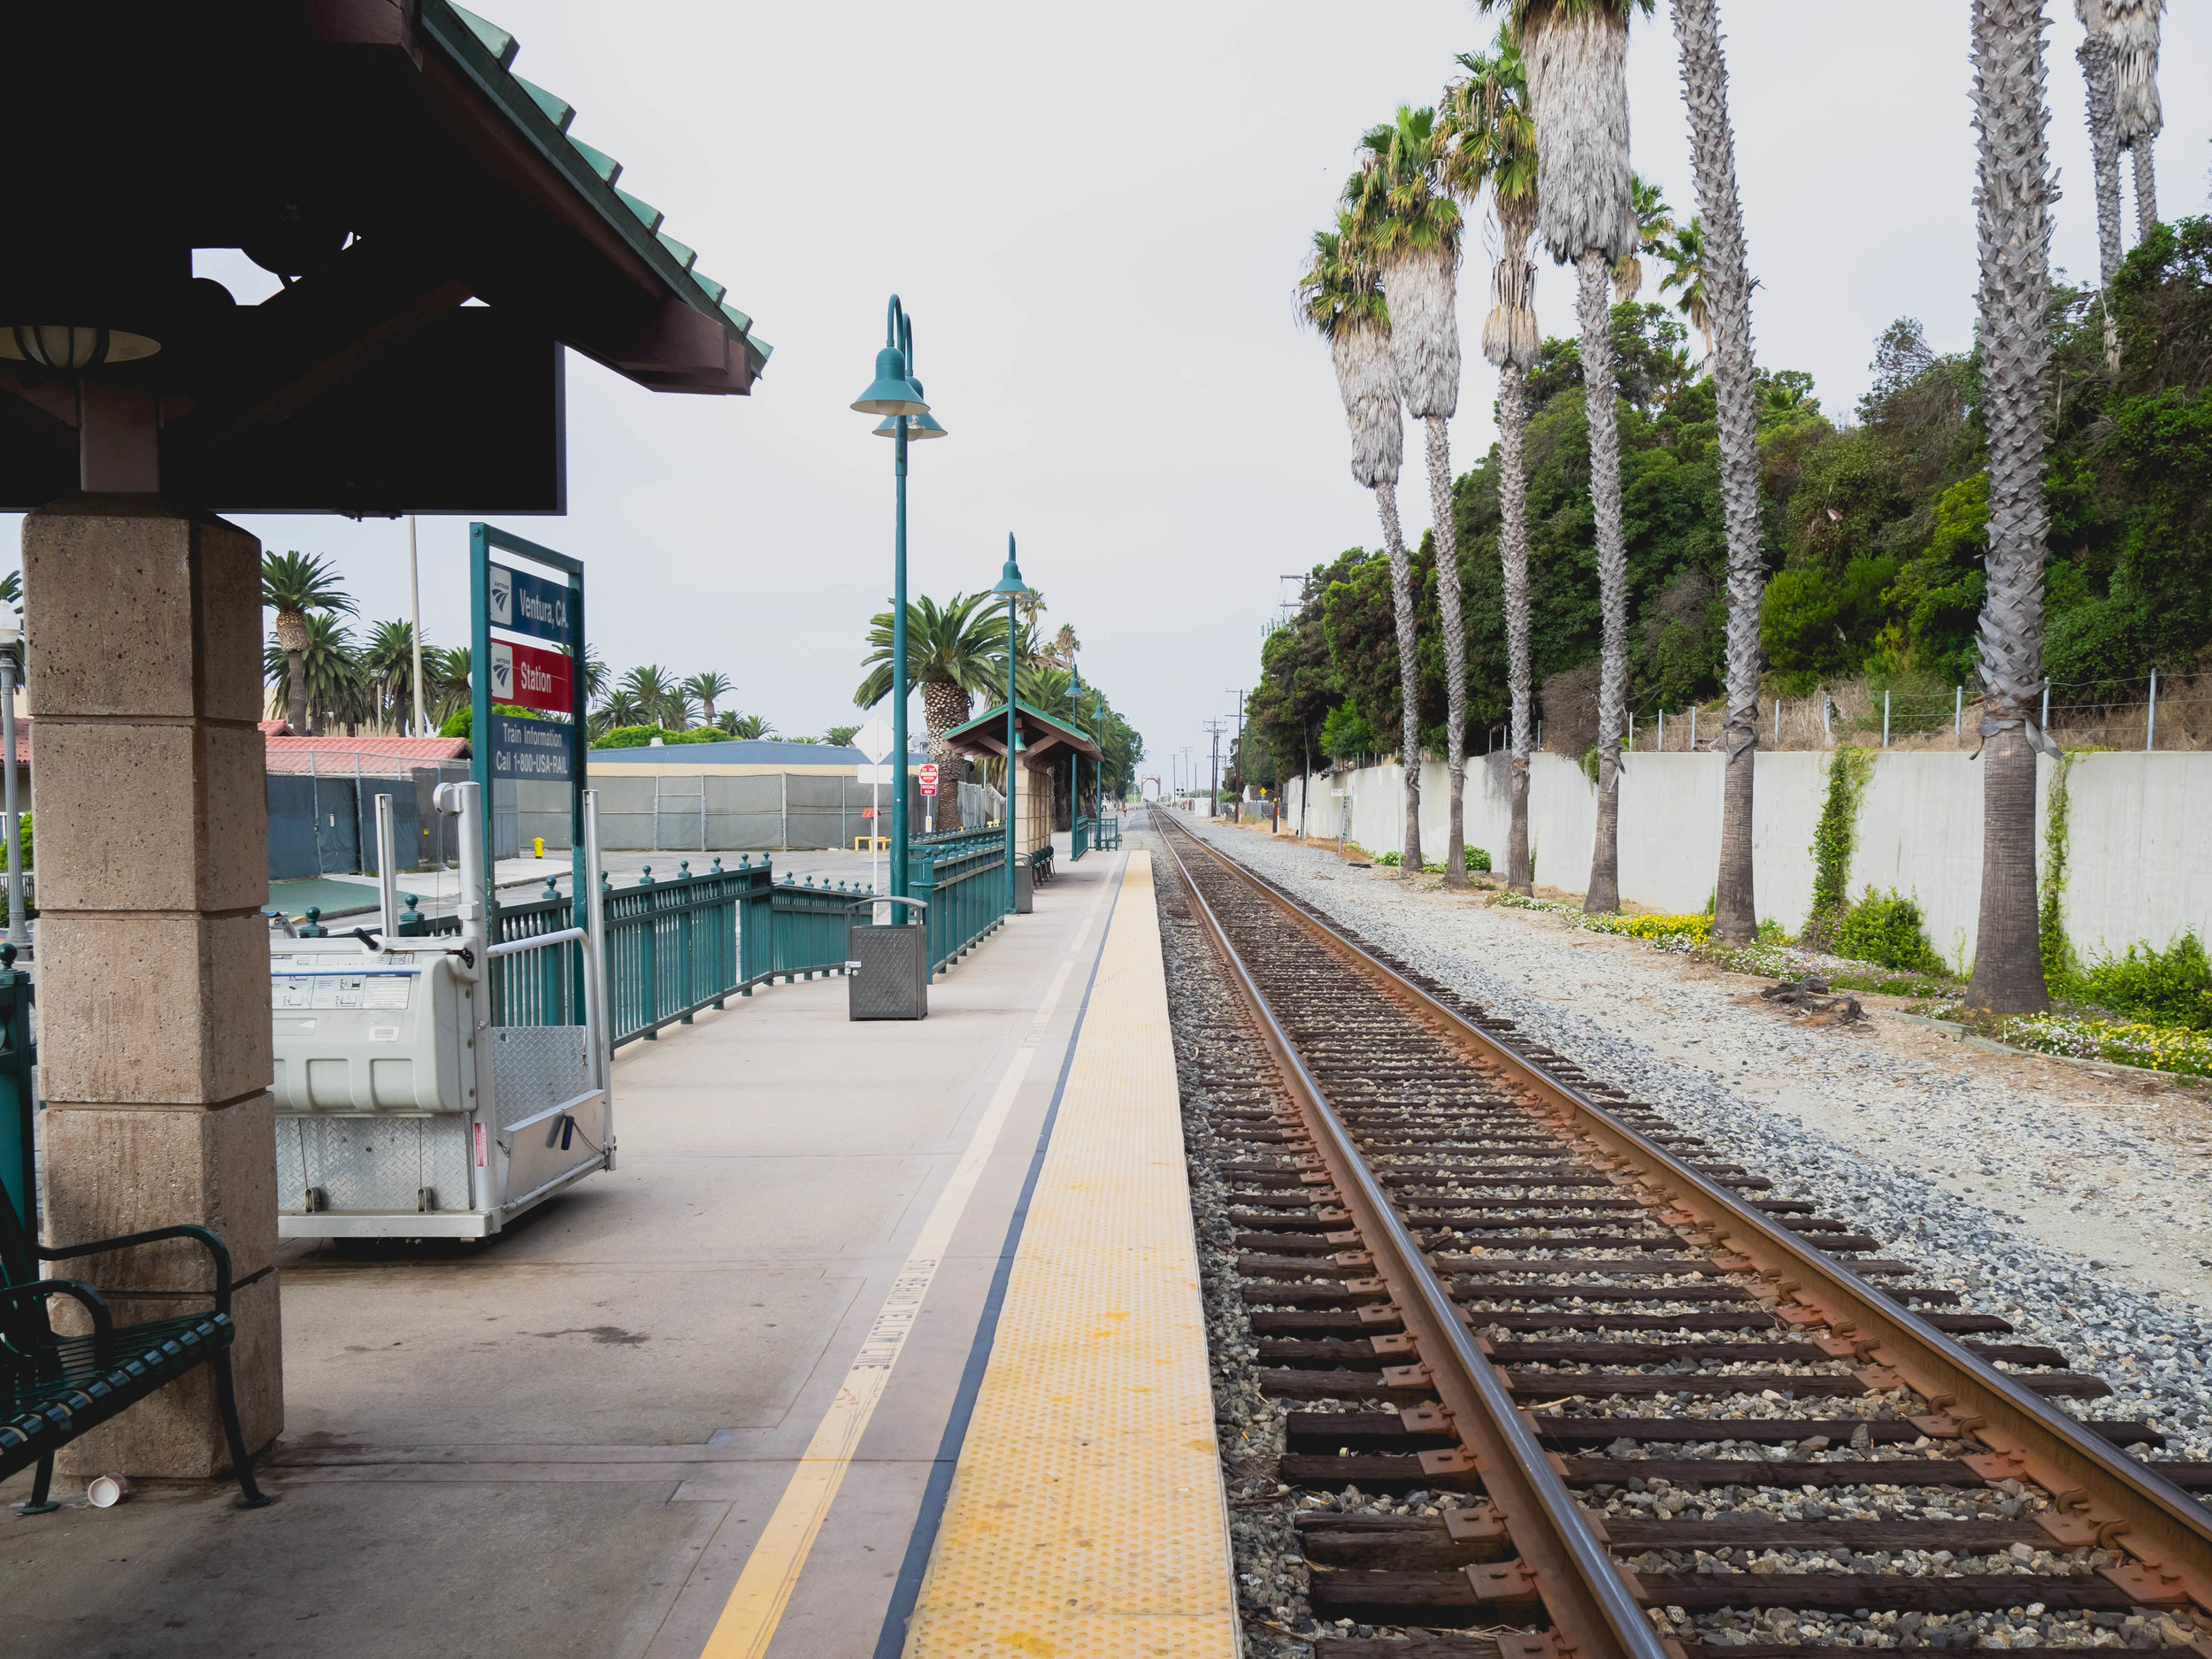 ventura amtrak station.